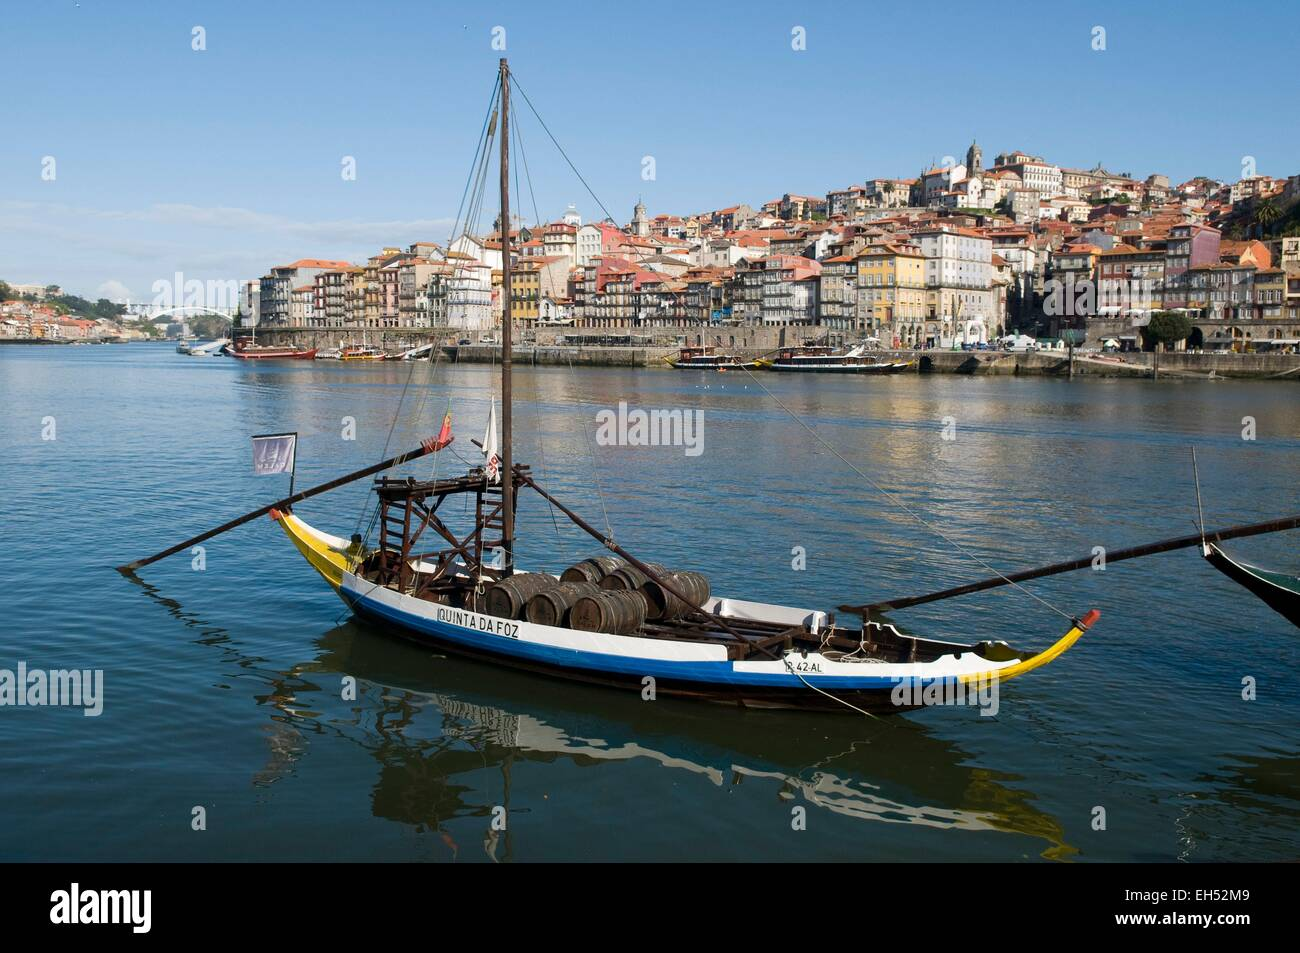 Portugal, North Region, Porto, historical center listed as World Heritage by UNESCO, Cais de Ribeira historic district, - Stock Image